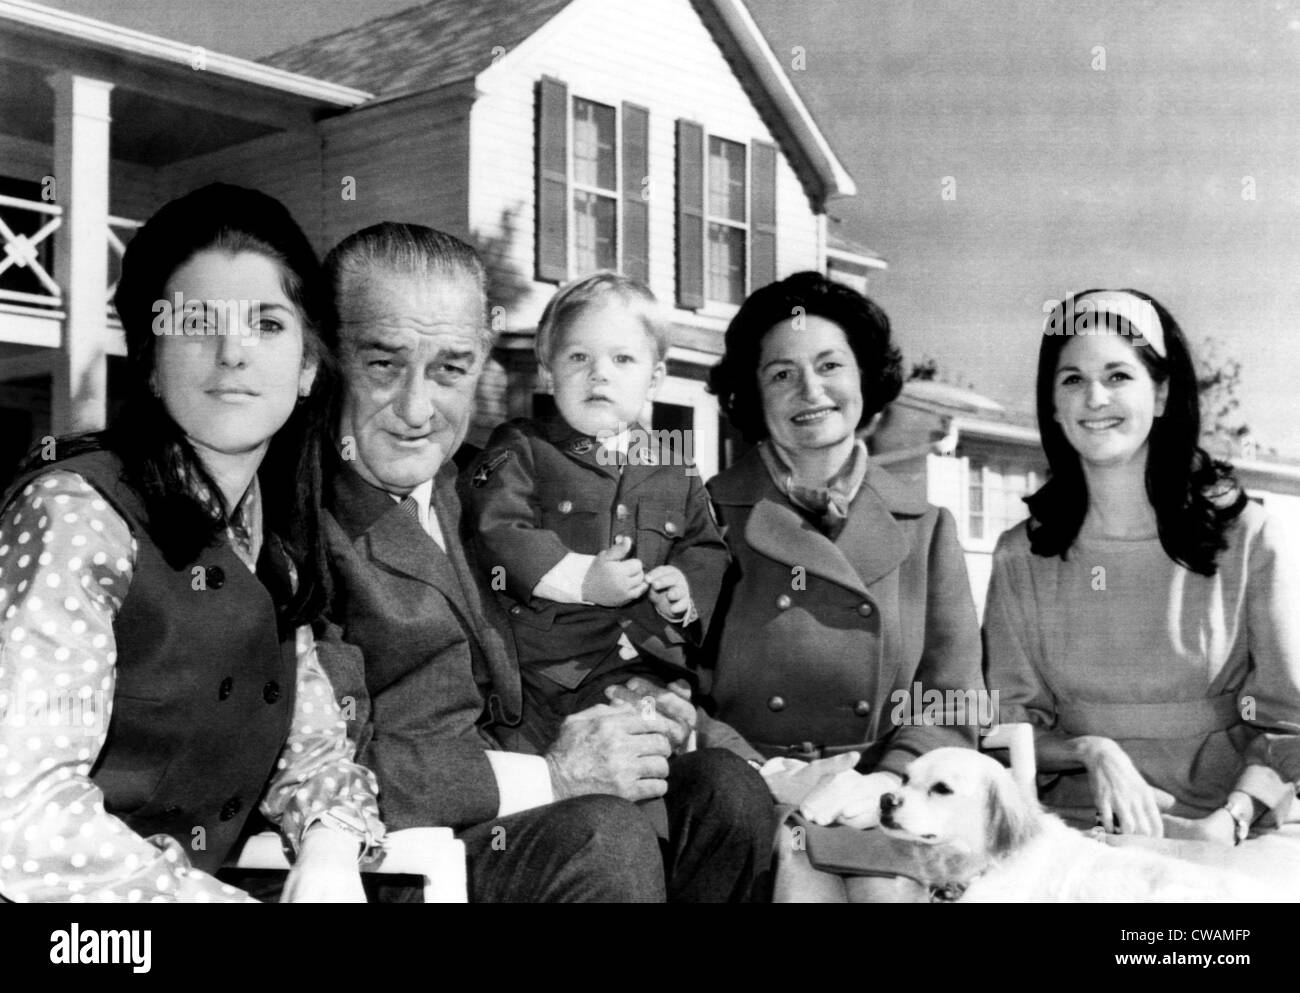 The first family pose for pictures on the front lawn of the LBJ Ranch shortly after attending Thanksgiving services - Stock Image